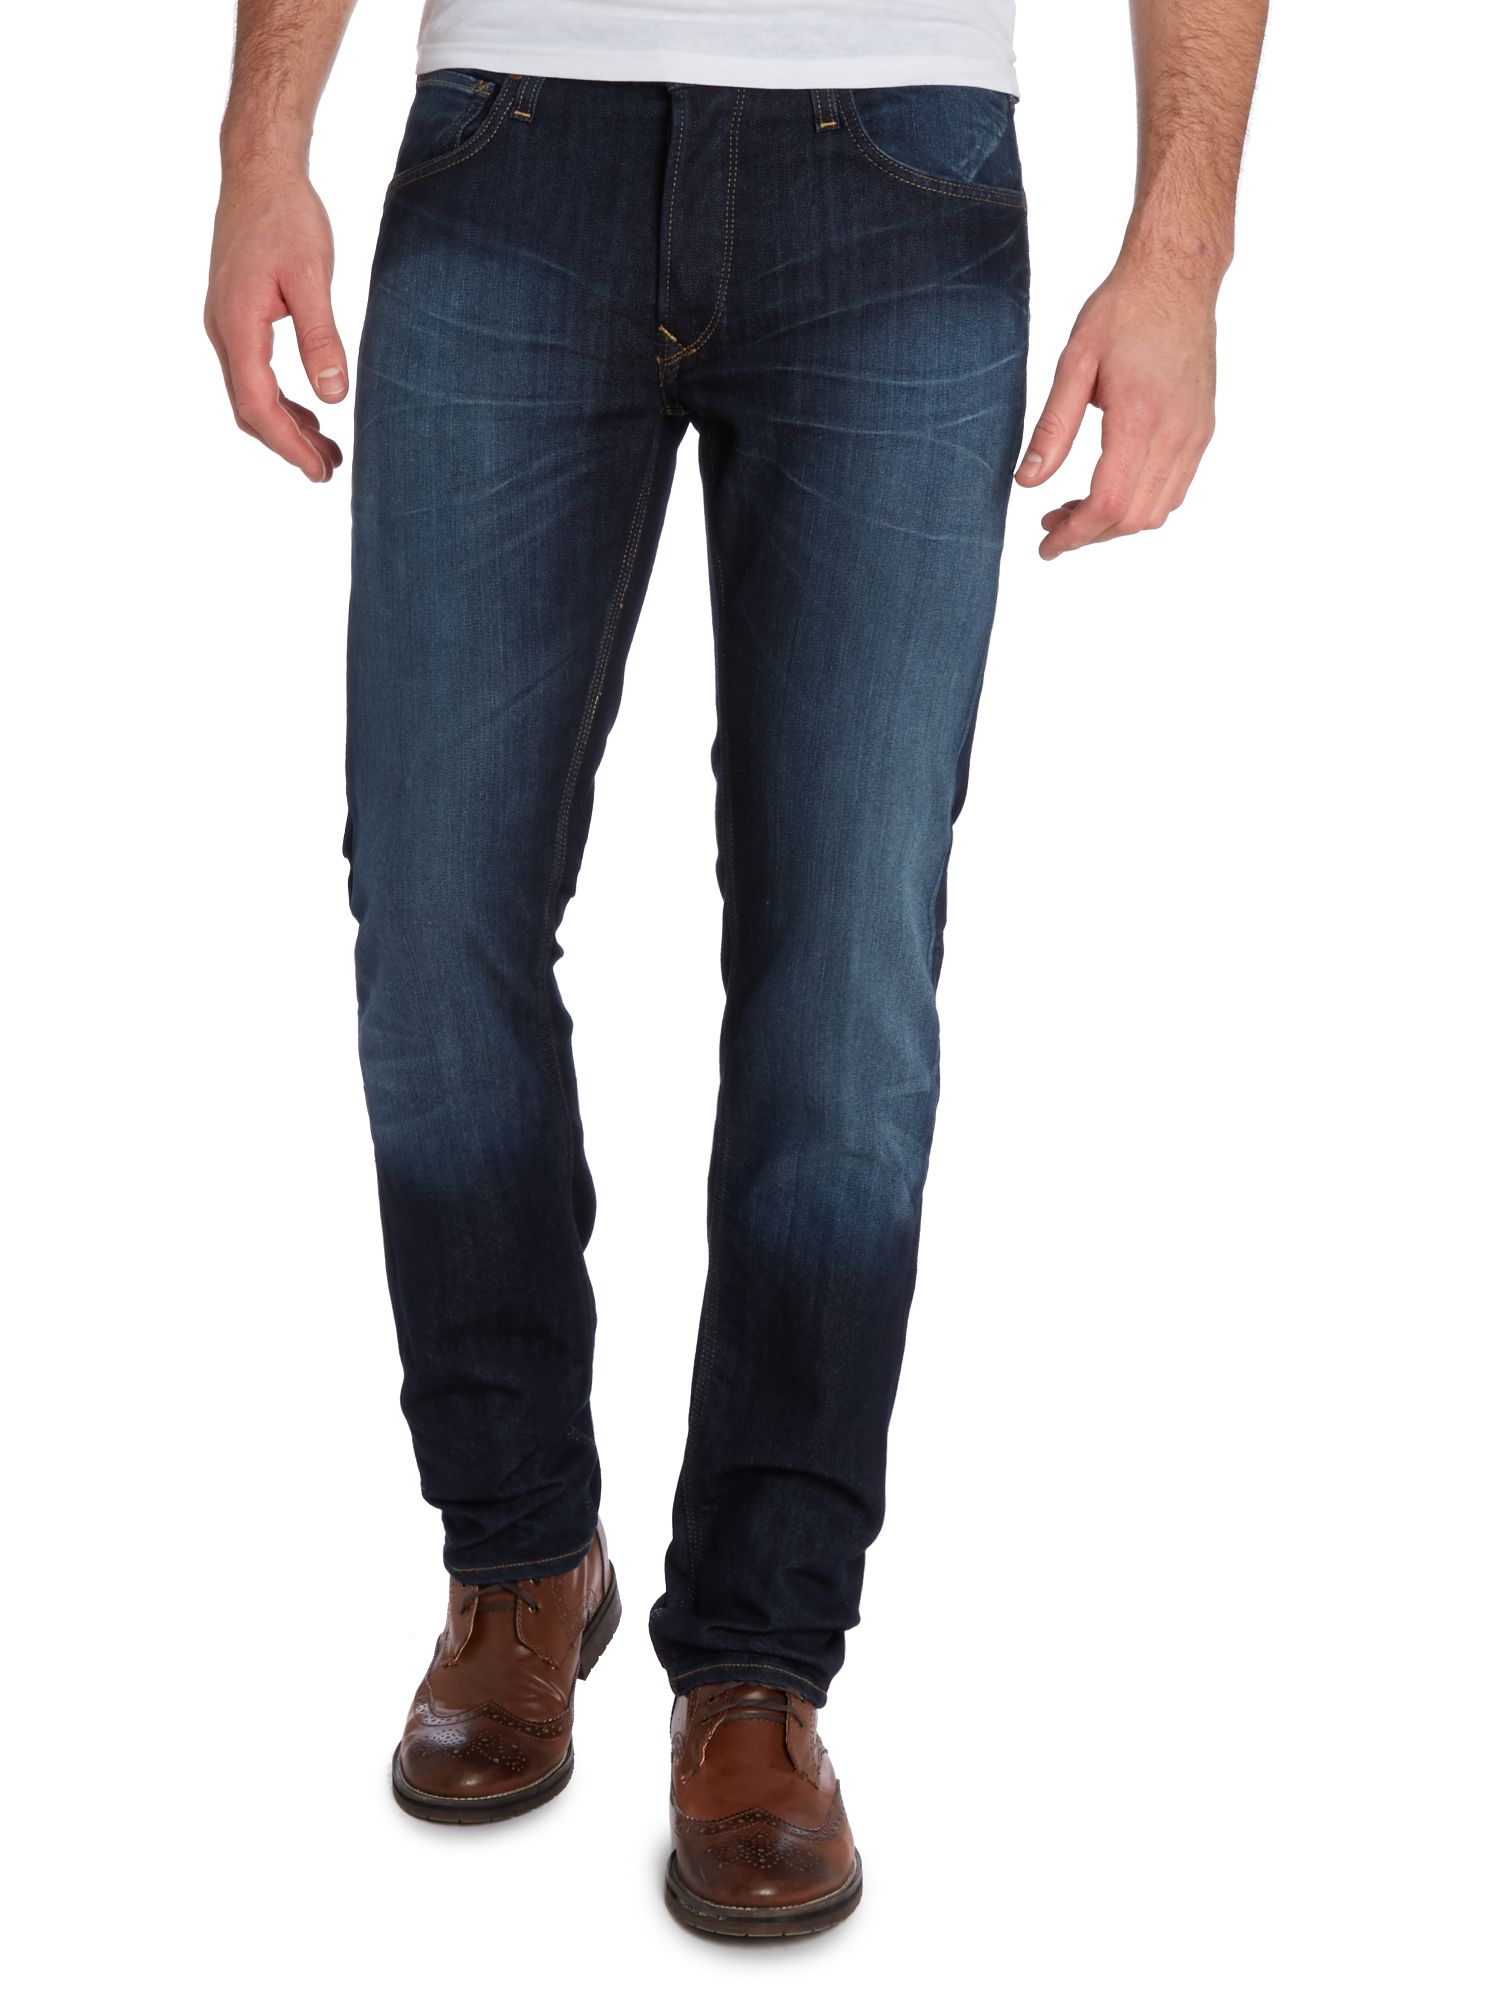 Daren regular fit strong hand jeans